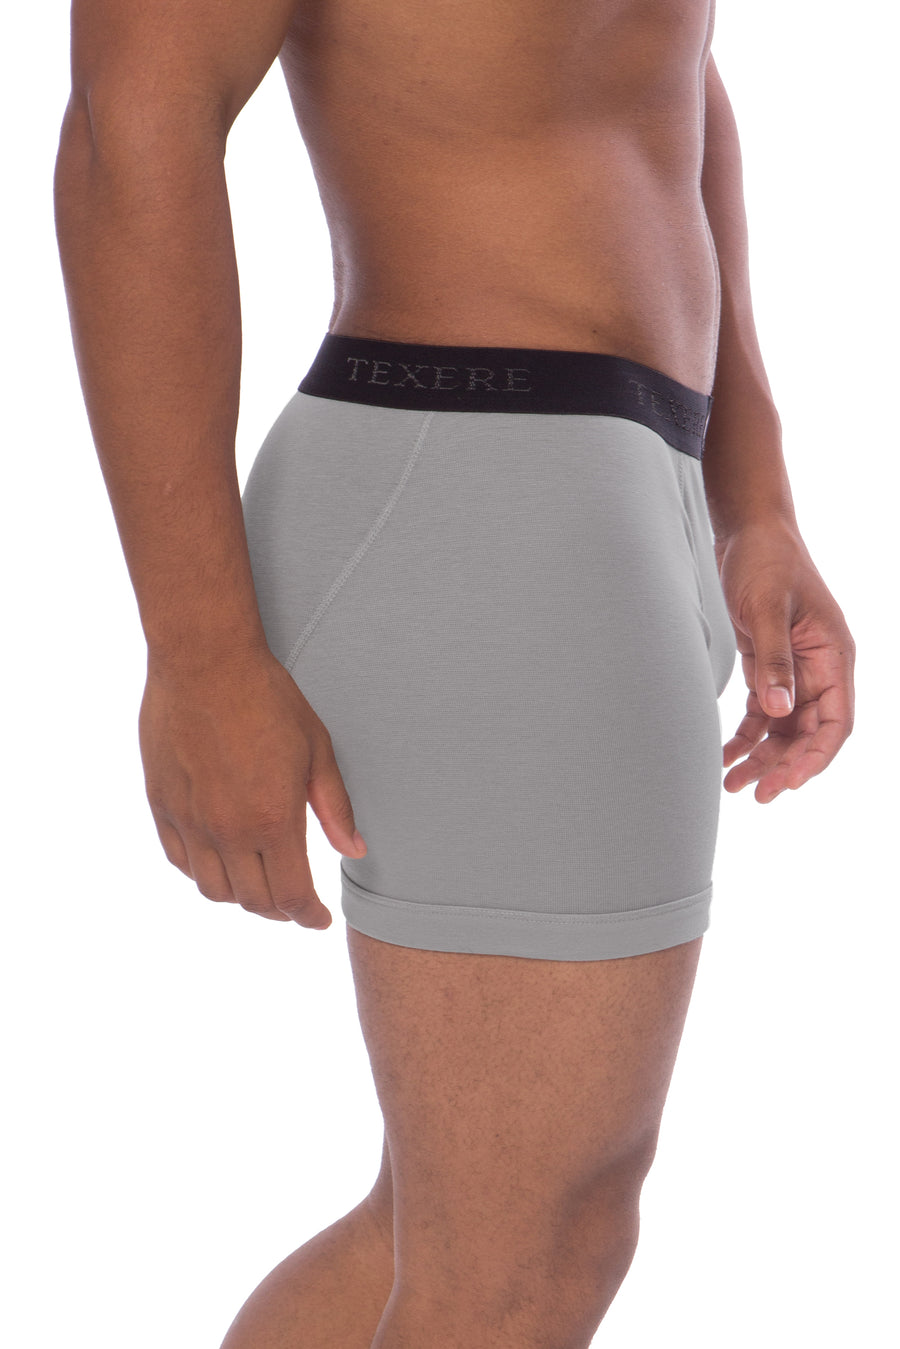 Men's Bamboo Viscose Boxer Briefs - TexereSilk